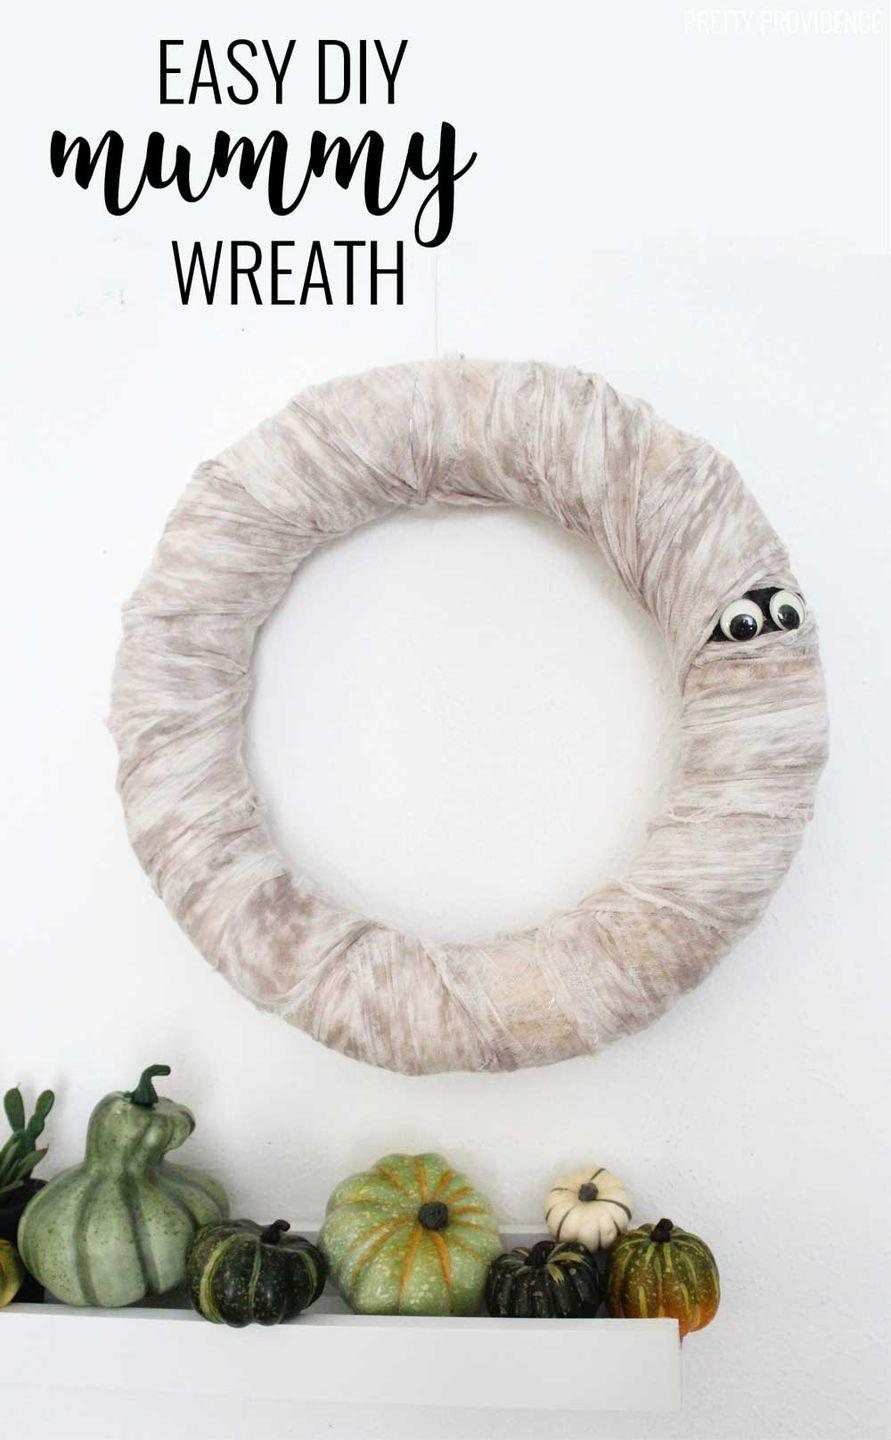 """<p>This monochromatic mummy <a href=""""https://www.goodhousekeeping.com/holidays/halloween-ideas/g79/diy-halloween-wreaths/"""" rel=""""nofollow noopener"""" target=""""_blank"""" data-ylk=""""slk:wreath"""" class=""""link rapid-noclick-resp"""">wreath</a> will pop against any front door color, especially black and red. Spot the googly eyes! </p><p><em><a href=""""https://prettyprovidence.com/halloween-mummy-wreath/"""" rel=""""nofollow noopener"""" target=""""_blank"""" data-ylk=""""slk:Get the tutorial at Pretty Providence »"""" class=""""link rapid-noclick-resp"""">Get the tutorial at Pretty Providence »</a></em> </p>"""